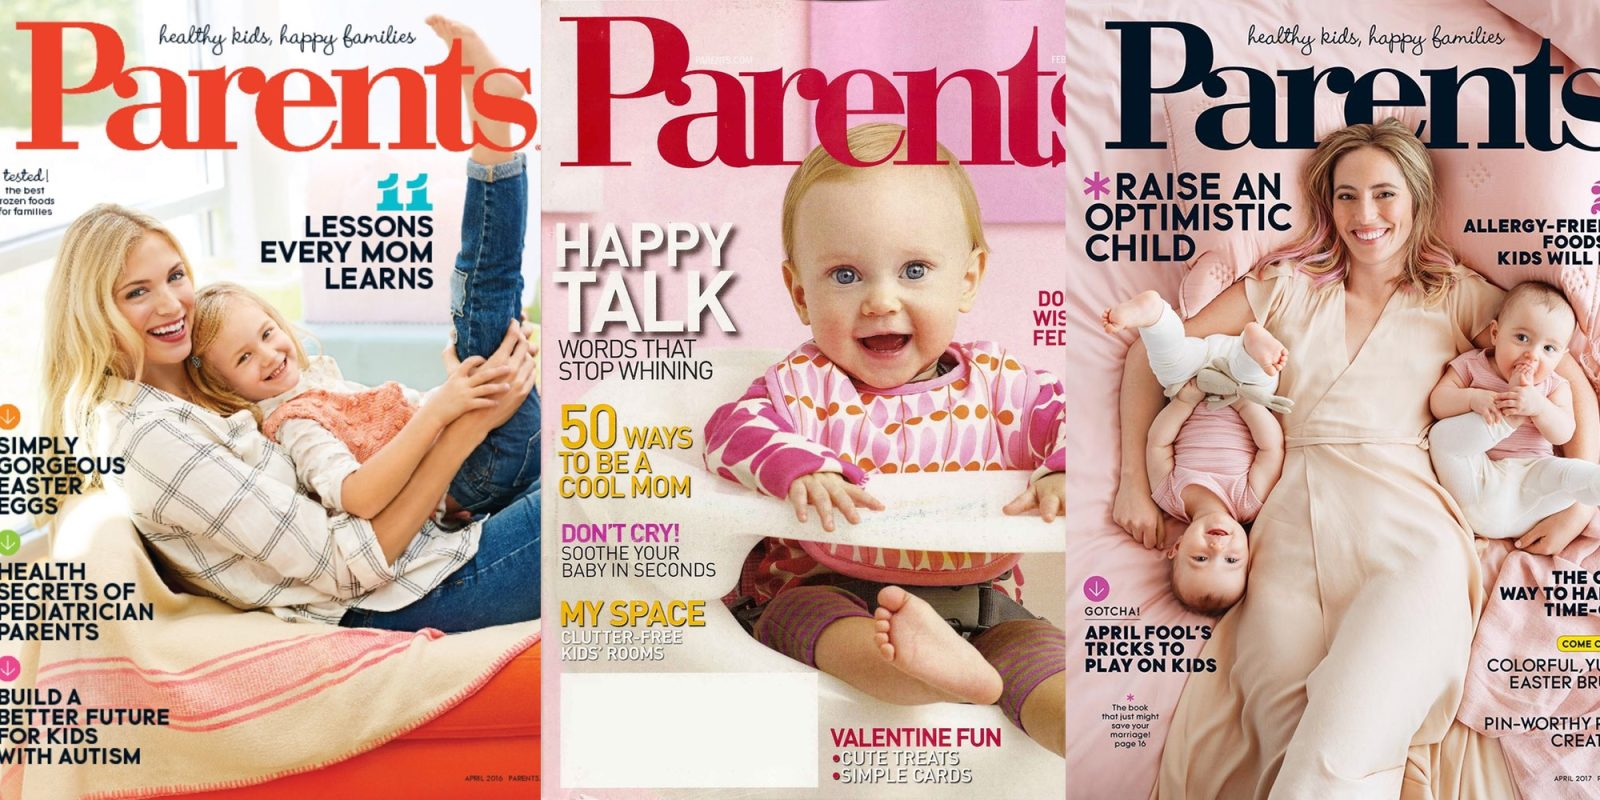 parents magazine essay submissions Children's and parenting magazine editors these book reviewers and magazine editors have been updated as noted at the end of any listing (10/10) if the contact is vital to you, verify the book reviewer's or editor's name and address before making submissions.